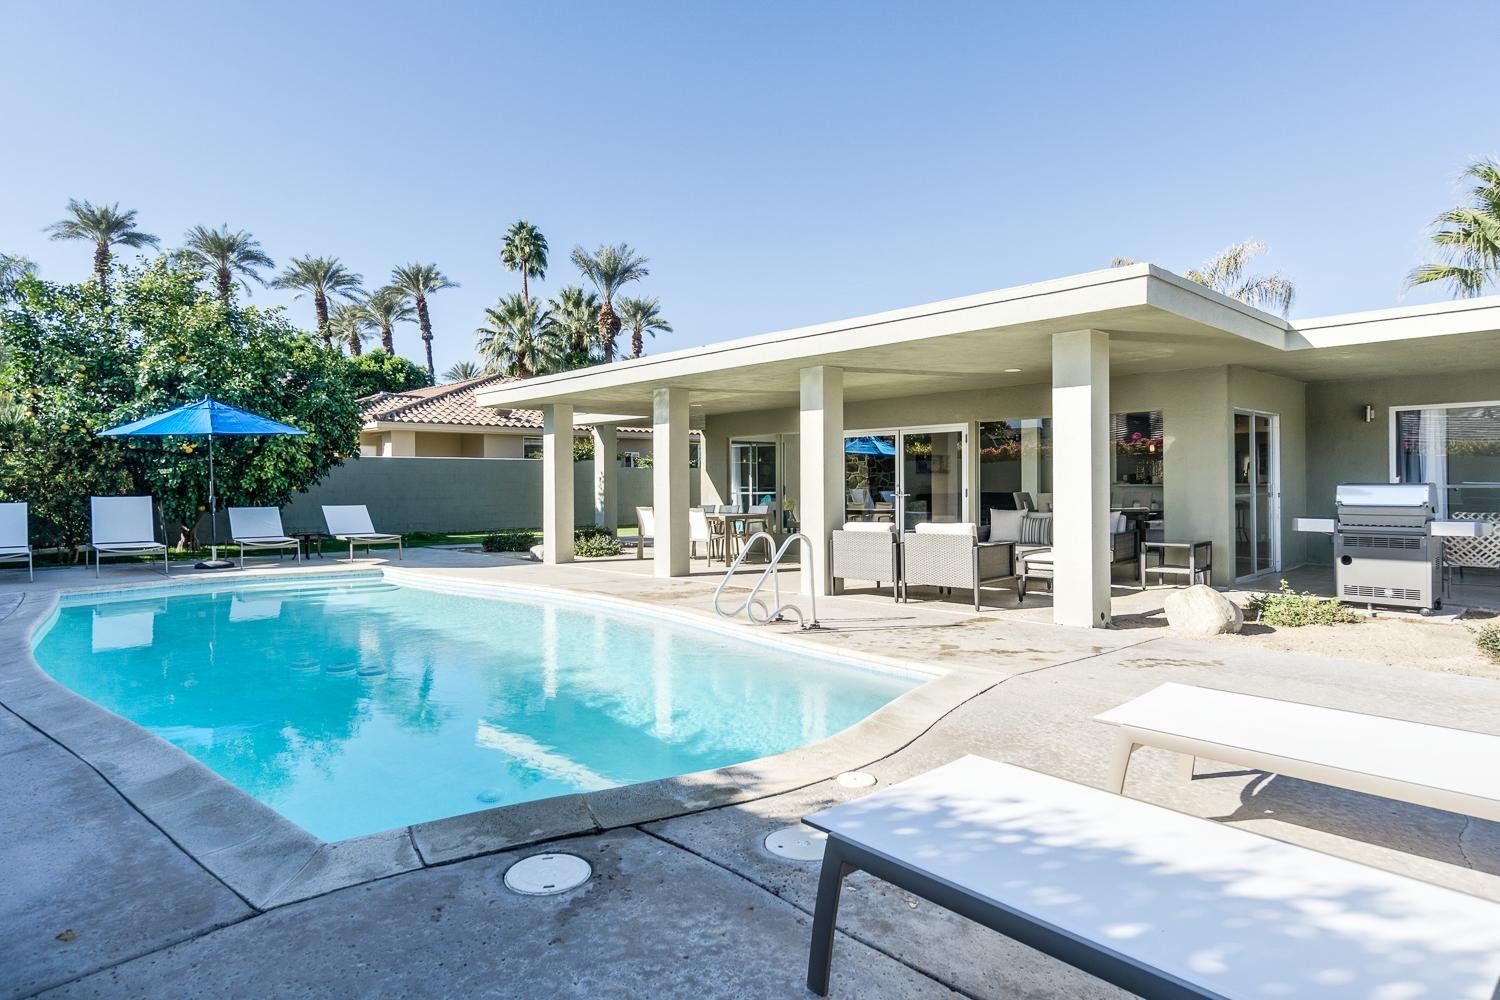 Welcome to Palm Springs! Our corner lot location features a lush yard and pool outside